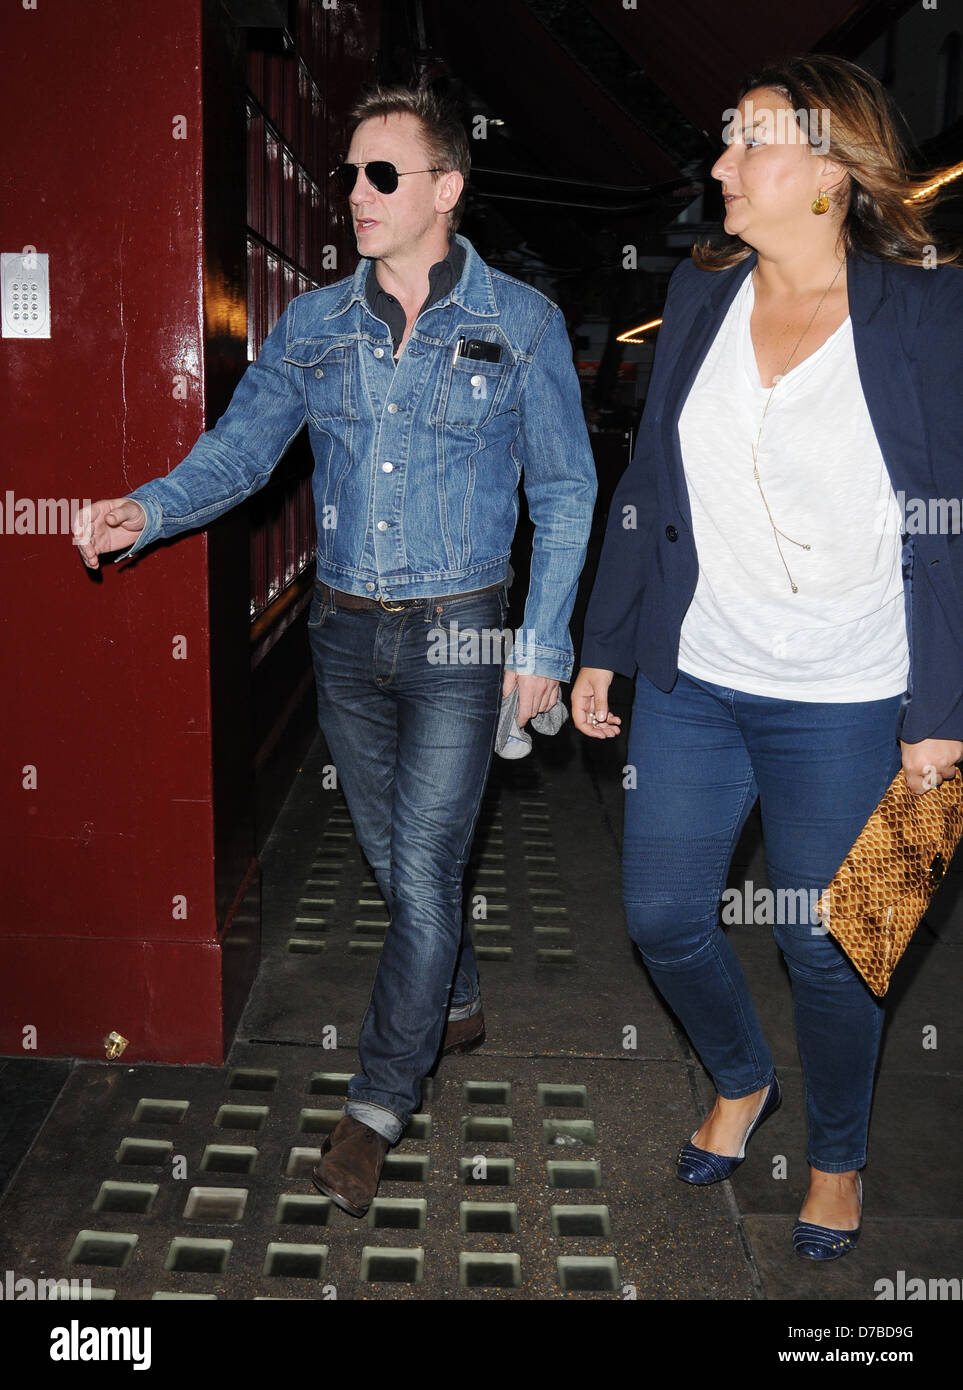 0ed90dd47 Daniel Craig wearing a denim jacket as he arrives at J Sheekey Stock ...